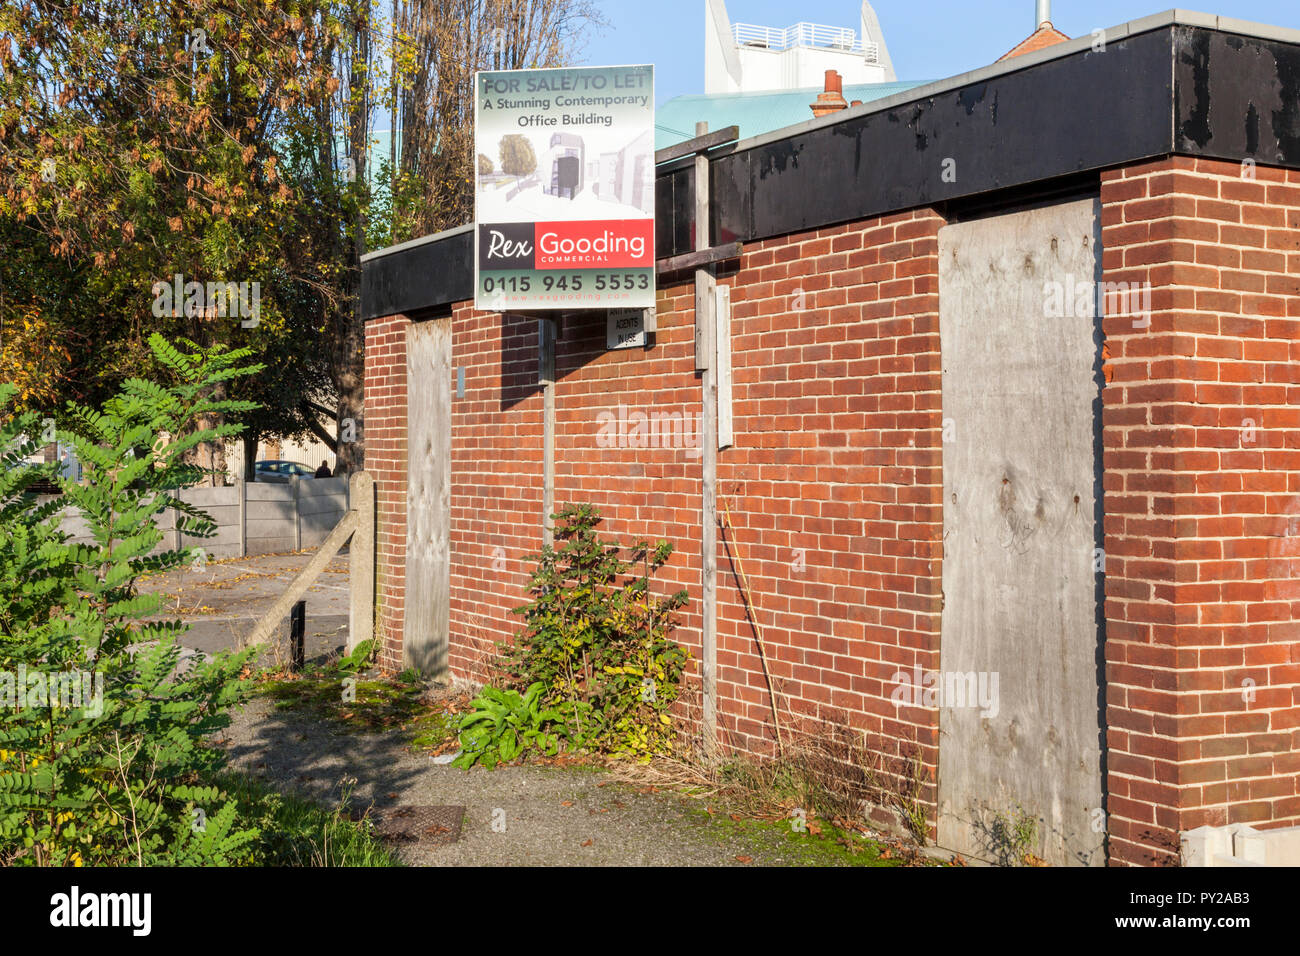 Boarded up public convenience for sale or to let. Available for change of use as a 'stunning contemporary office building', England, UK. - Stock Image